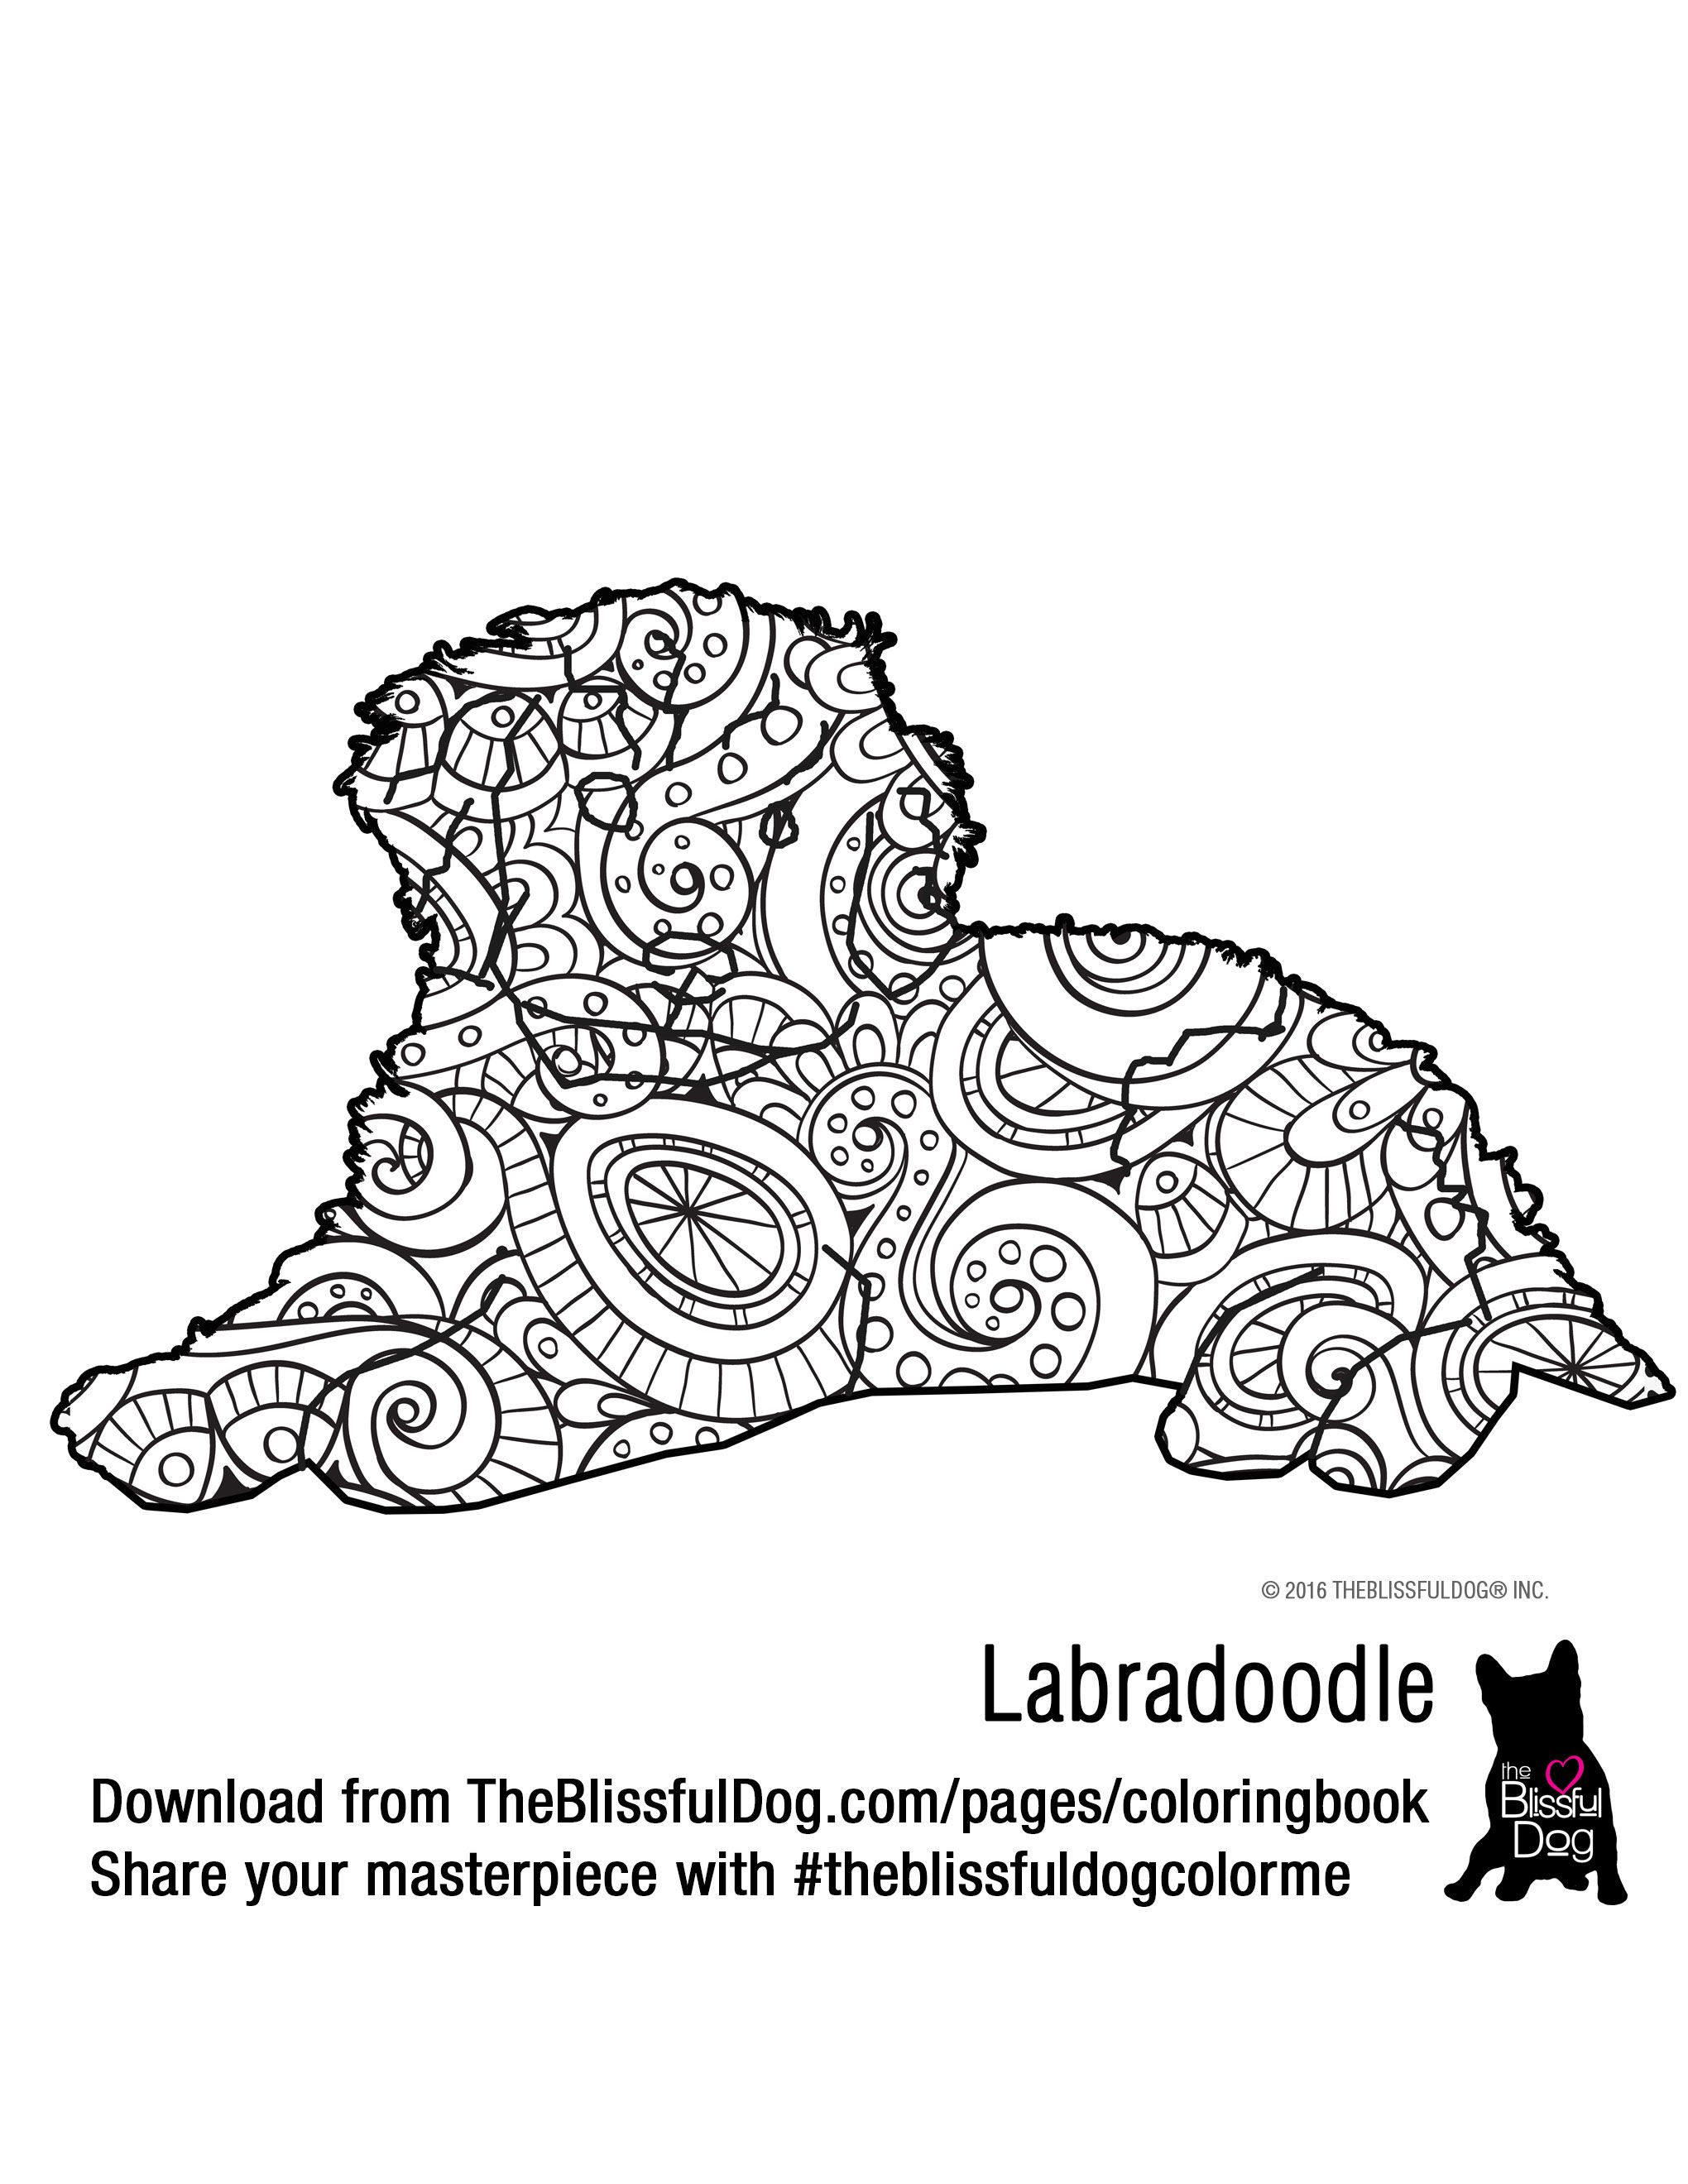 Amazing Color This Labradoodle Puppy FUN! Get All 60+ Dog Breeds And Color Them All